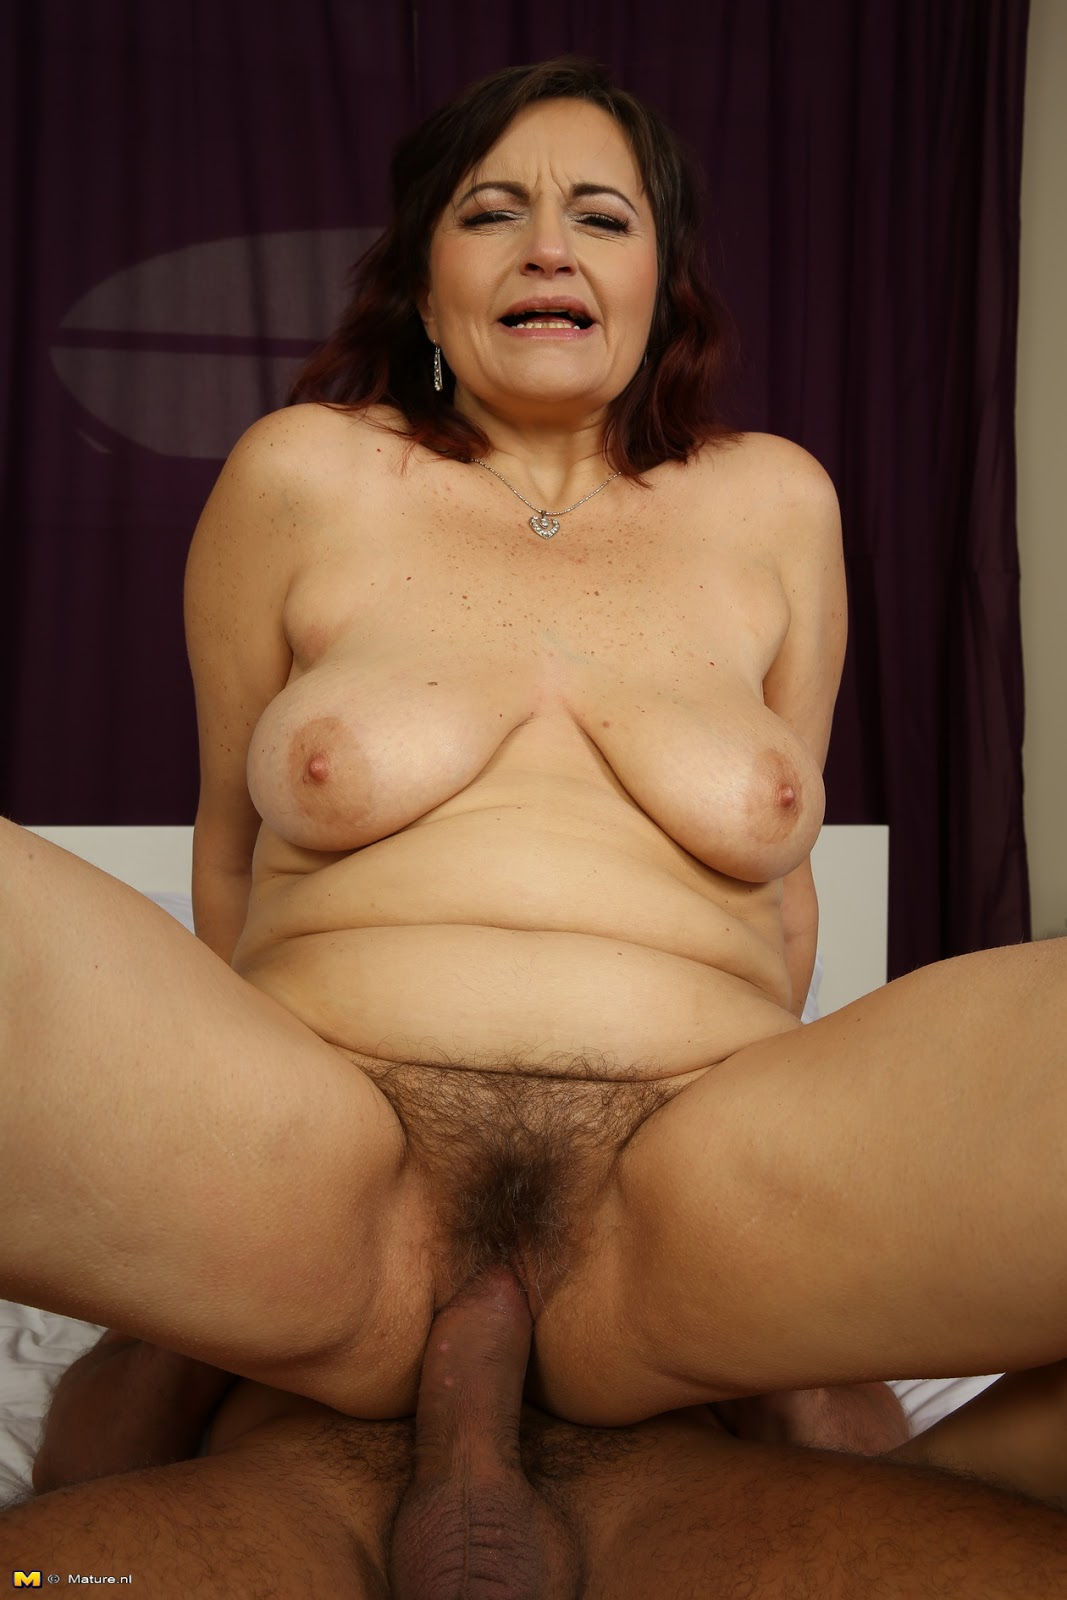 Hairy married pic pussy woman